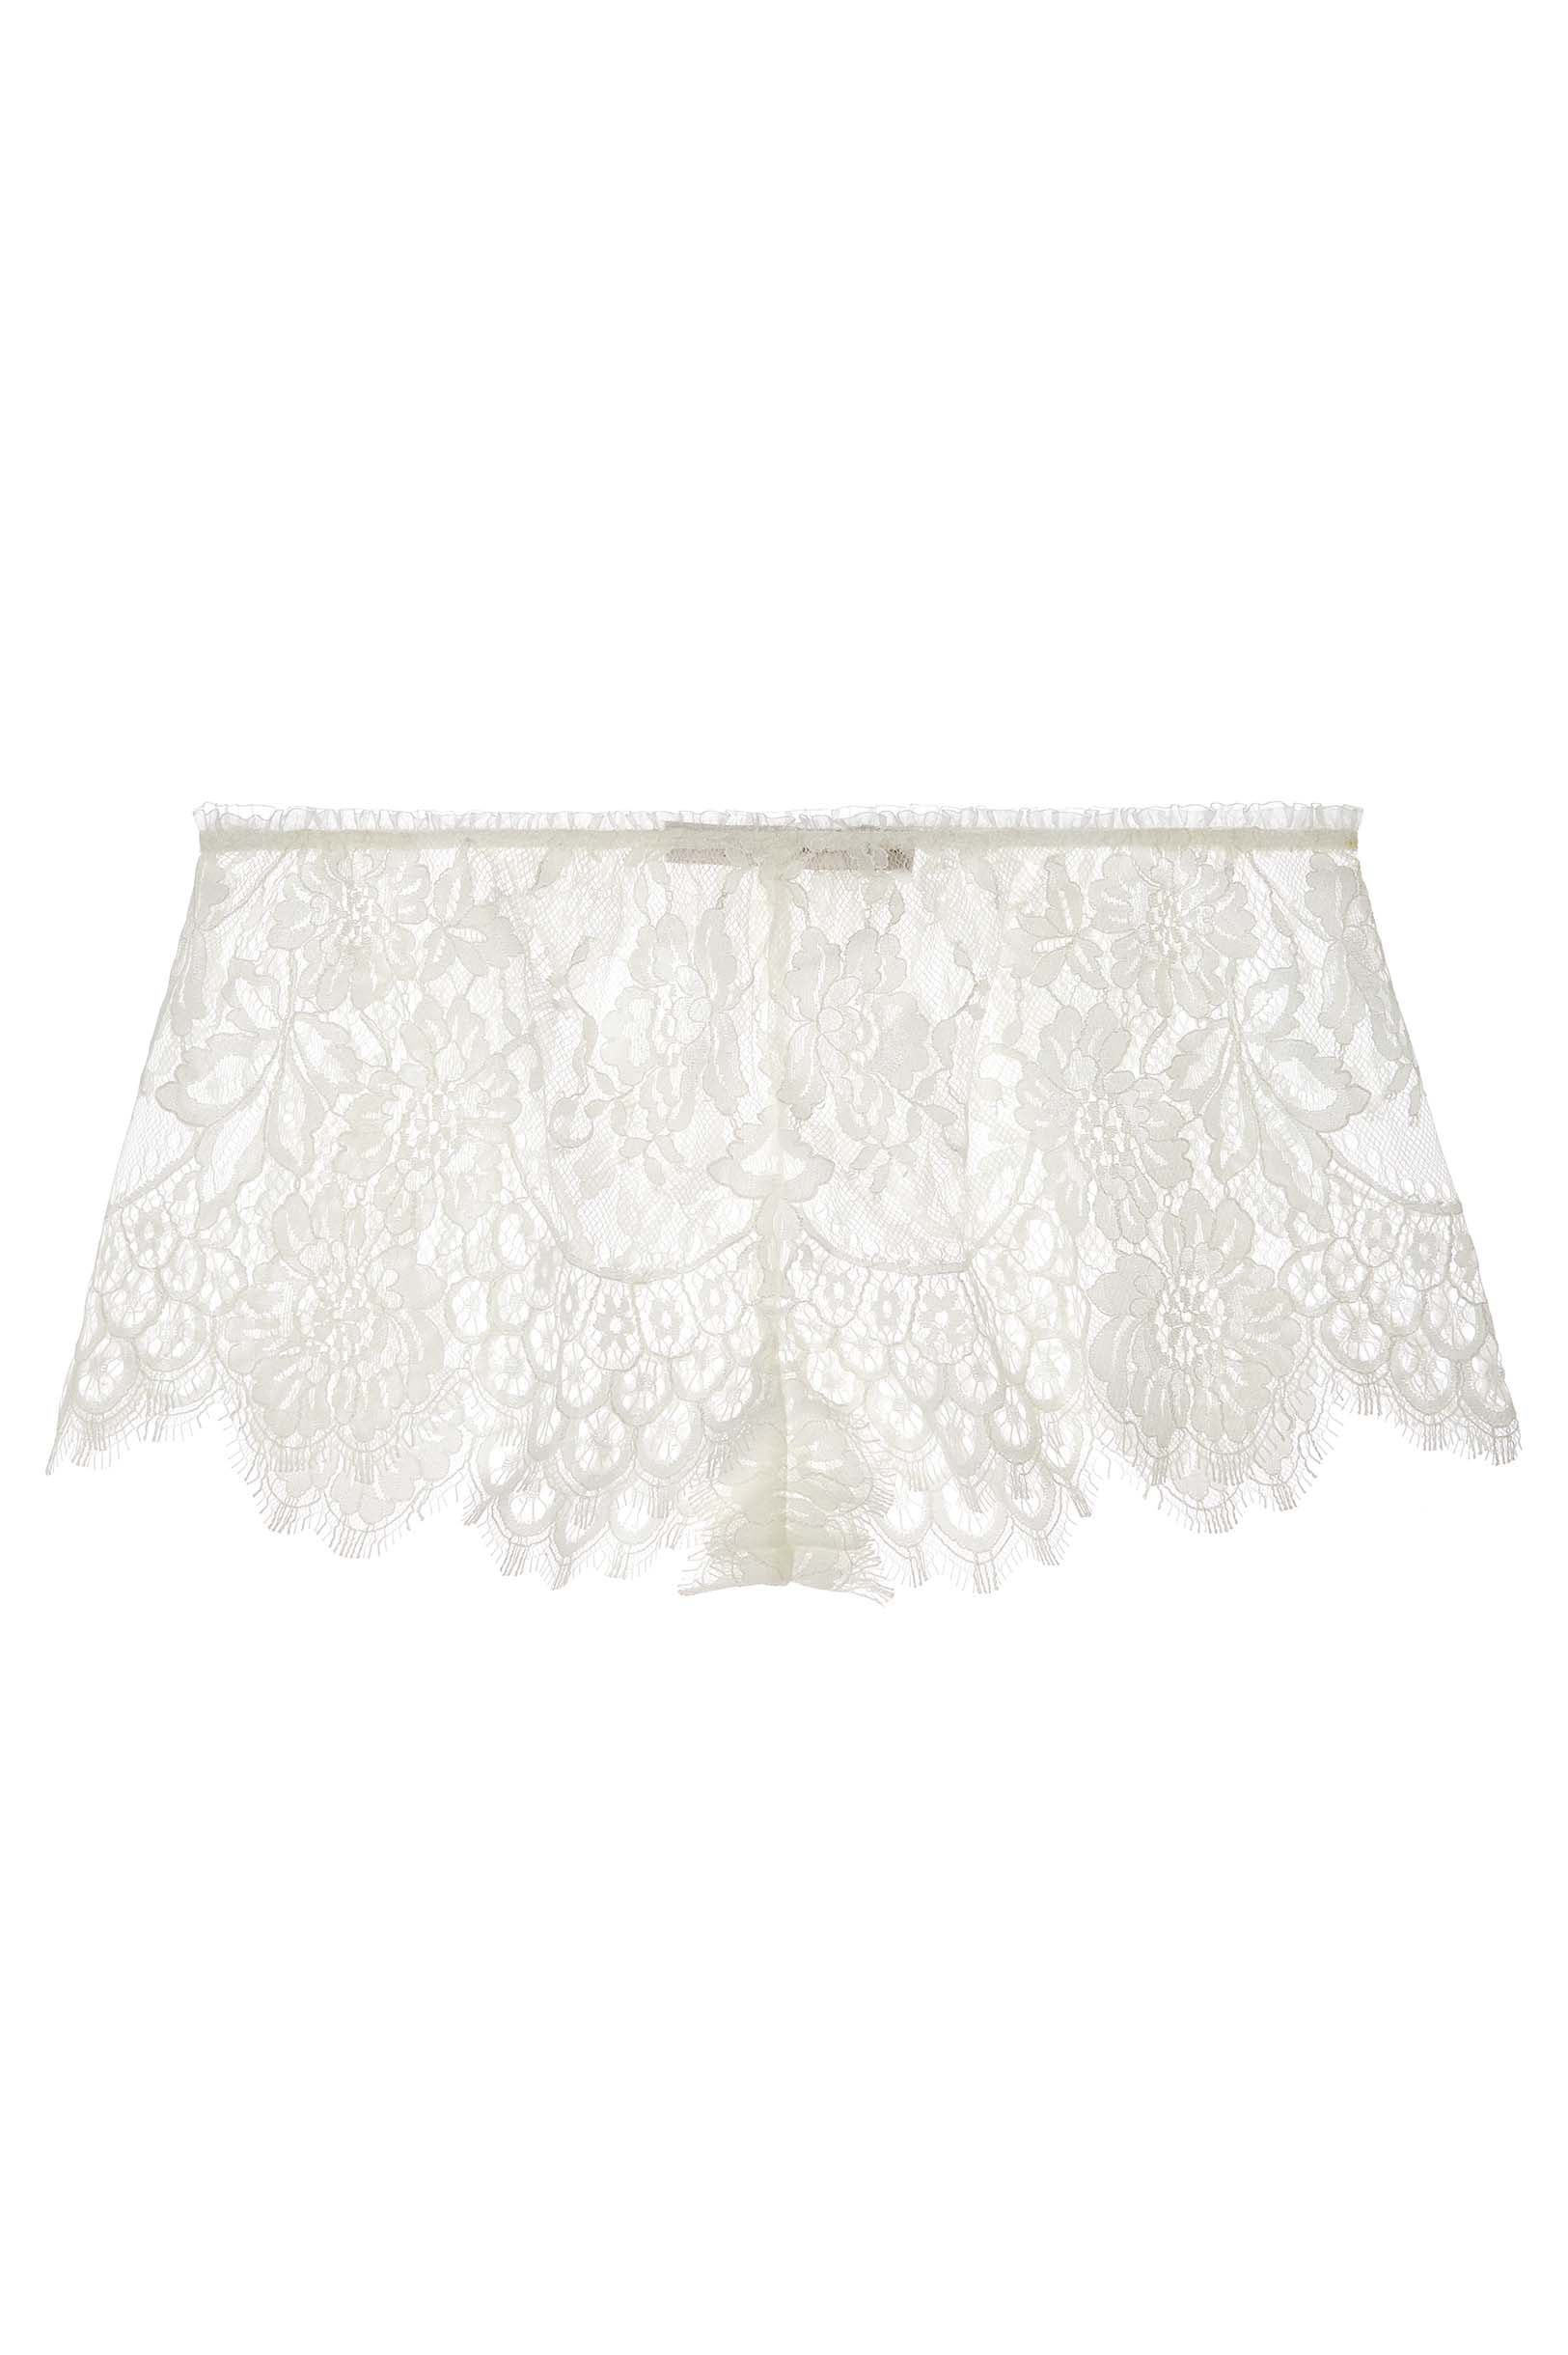 Swan Queen Scalloped lace shorties shorts in Ivory or Black